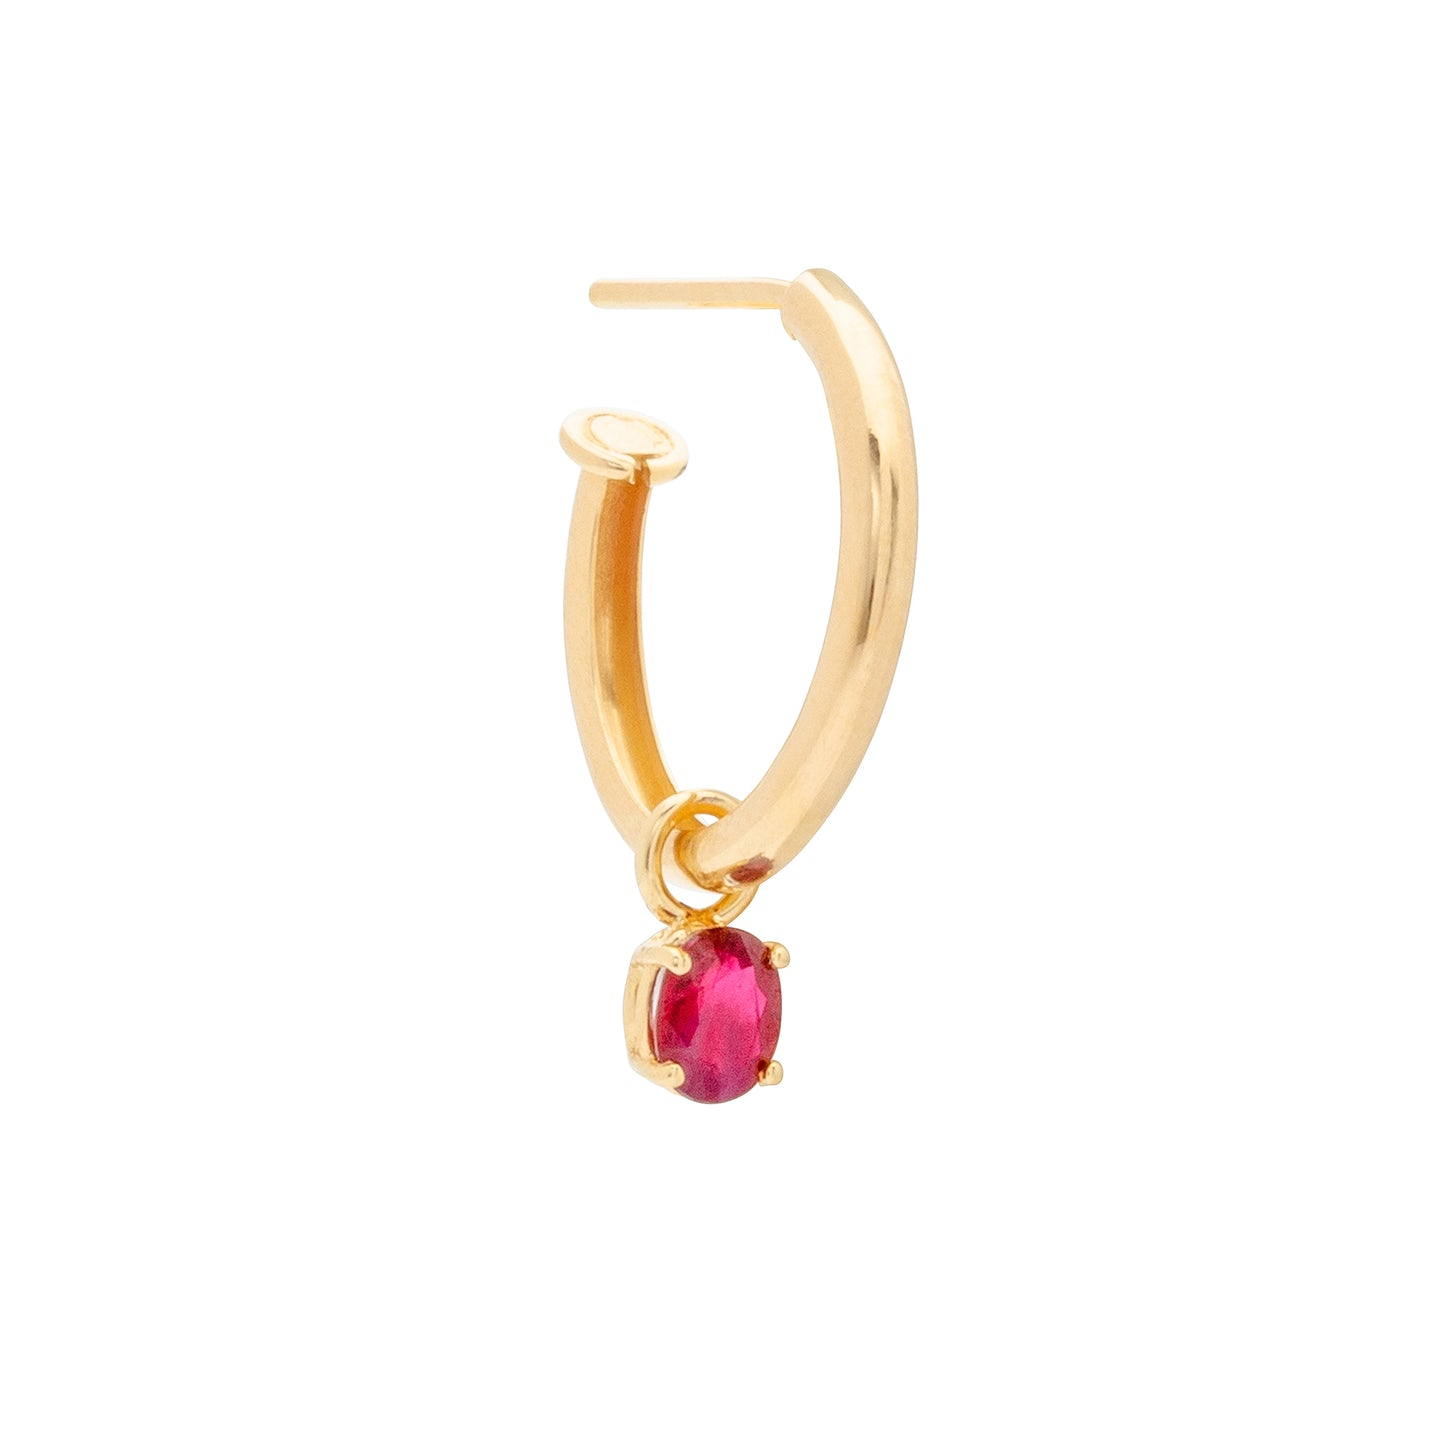 Aynur Abbott - E#52 Gold hoop medium with ruby earring